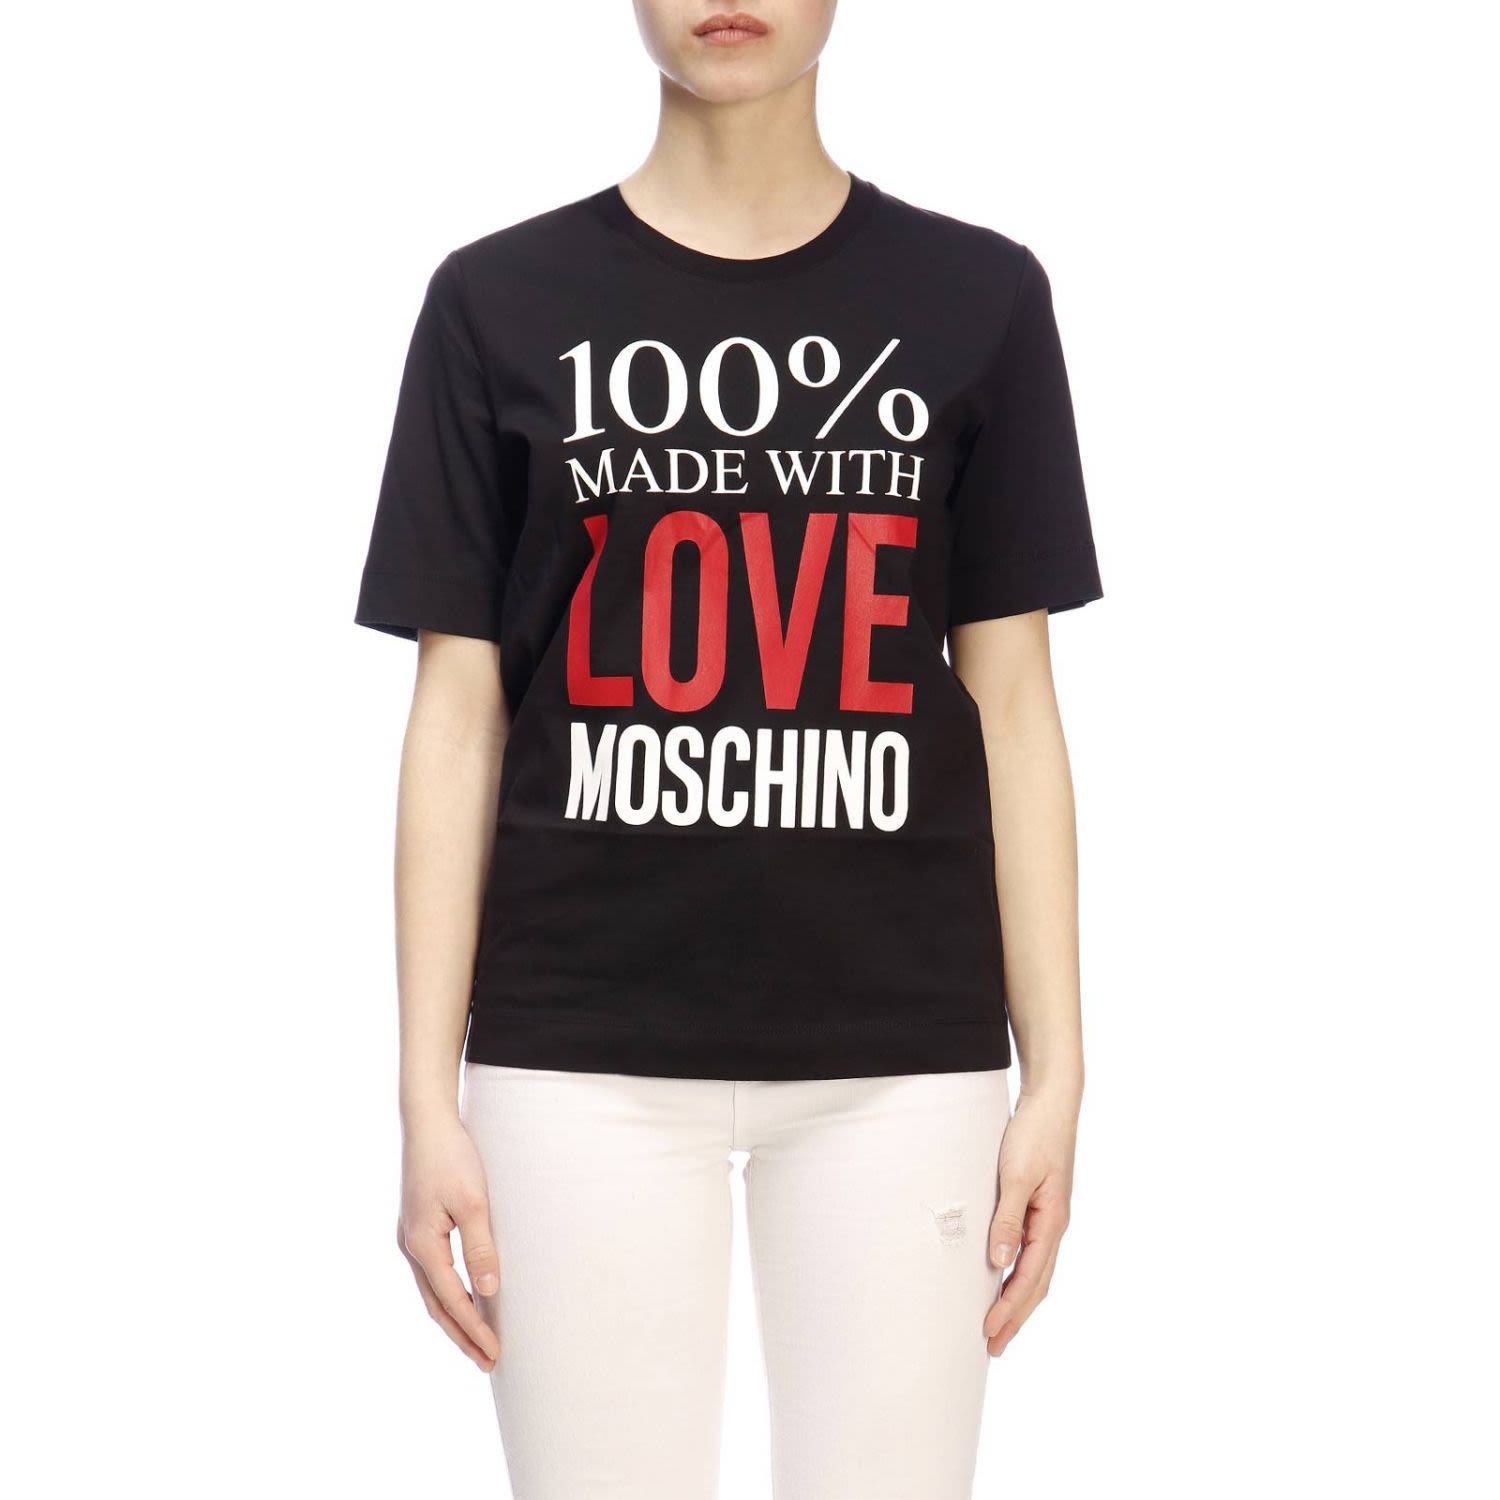 789a21ec7db Love Moschino Love Moschino T-shirt T-shirt Women Moschino Love ...